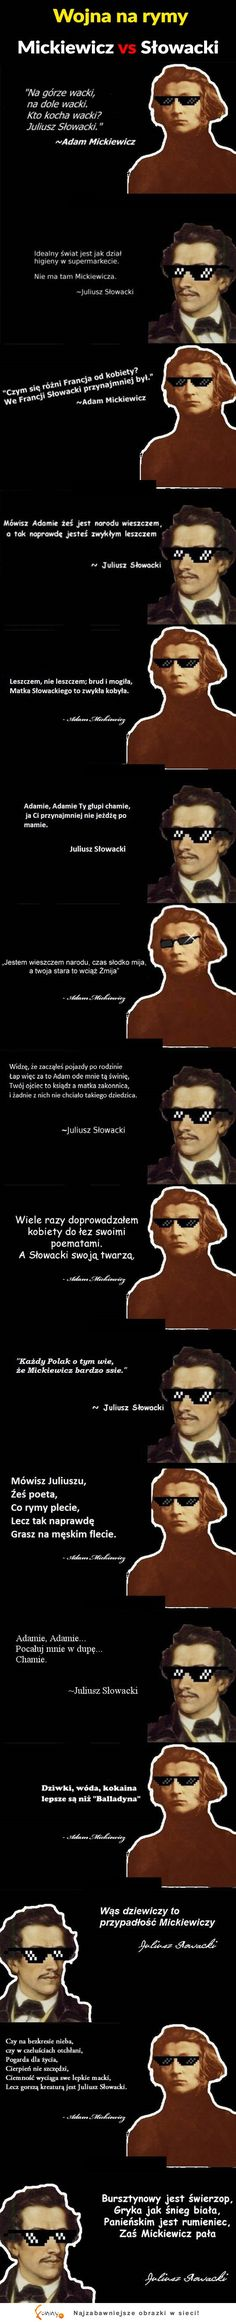 62 Super Ideas for humor polski lol 62 Super Ideen für Humor polski lol Funny Nurse Quotes, Nurse Humor, Humor Videos, Very Funny Memes, Funny Jokes, Joke Stories, Polish Memes, Funny Mems, Lol